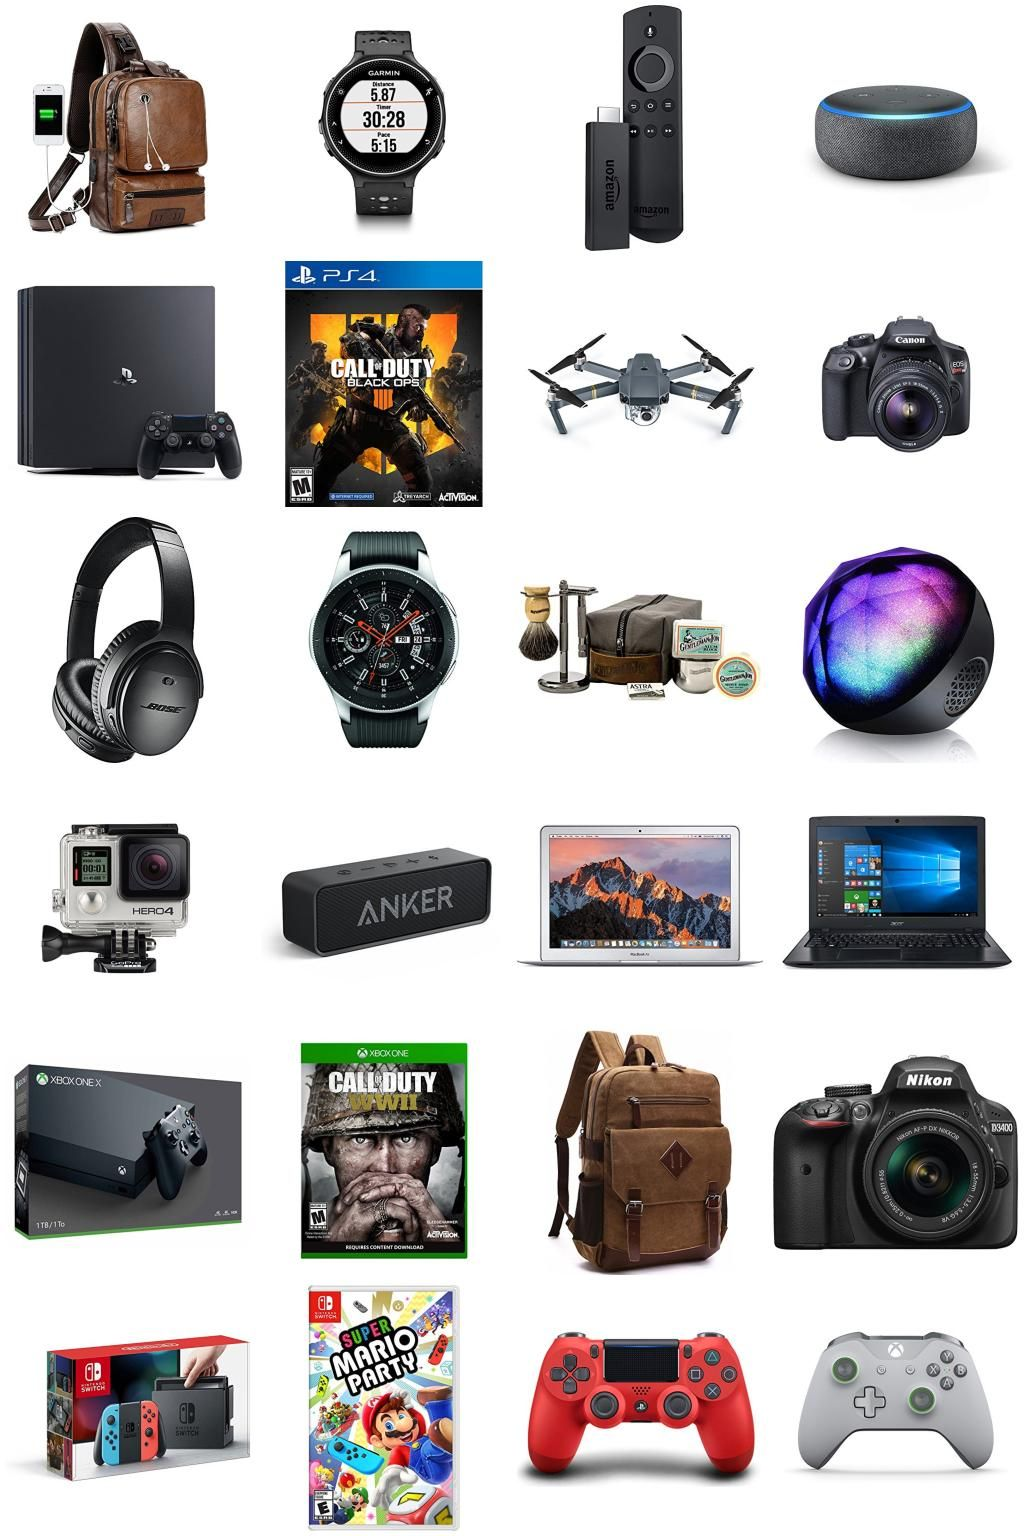 Best Video Game Products Video Game Stuff Video Game Collection Video Games Videogames Video G Cool Things To Buy Cool Gifts For Teens Video Games Gift